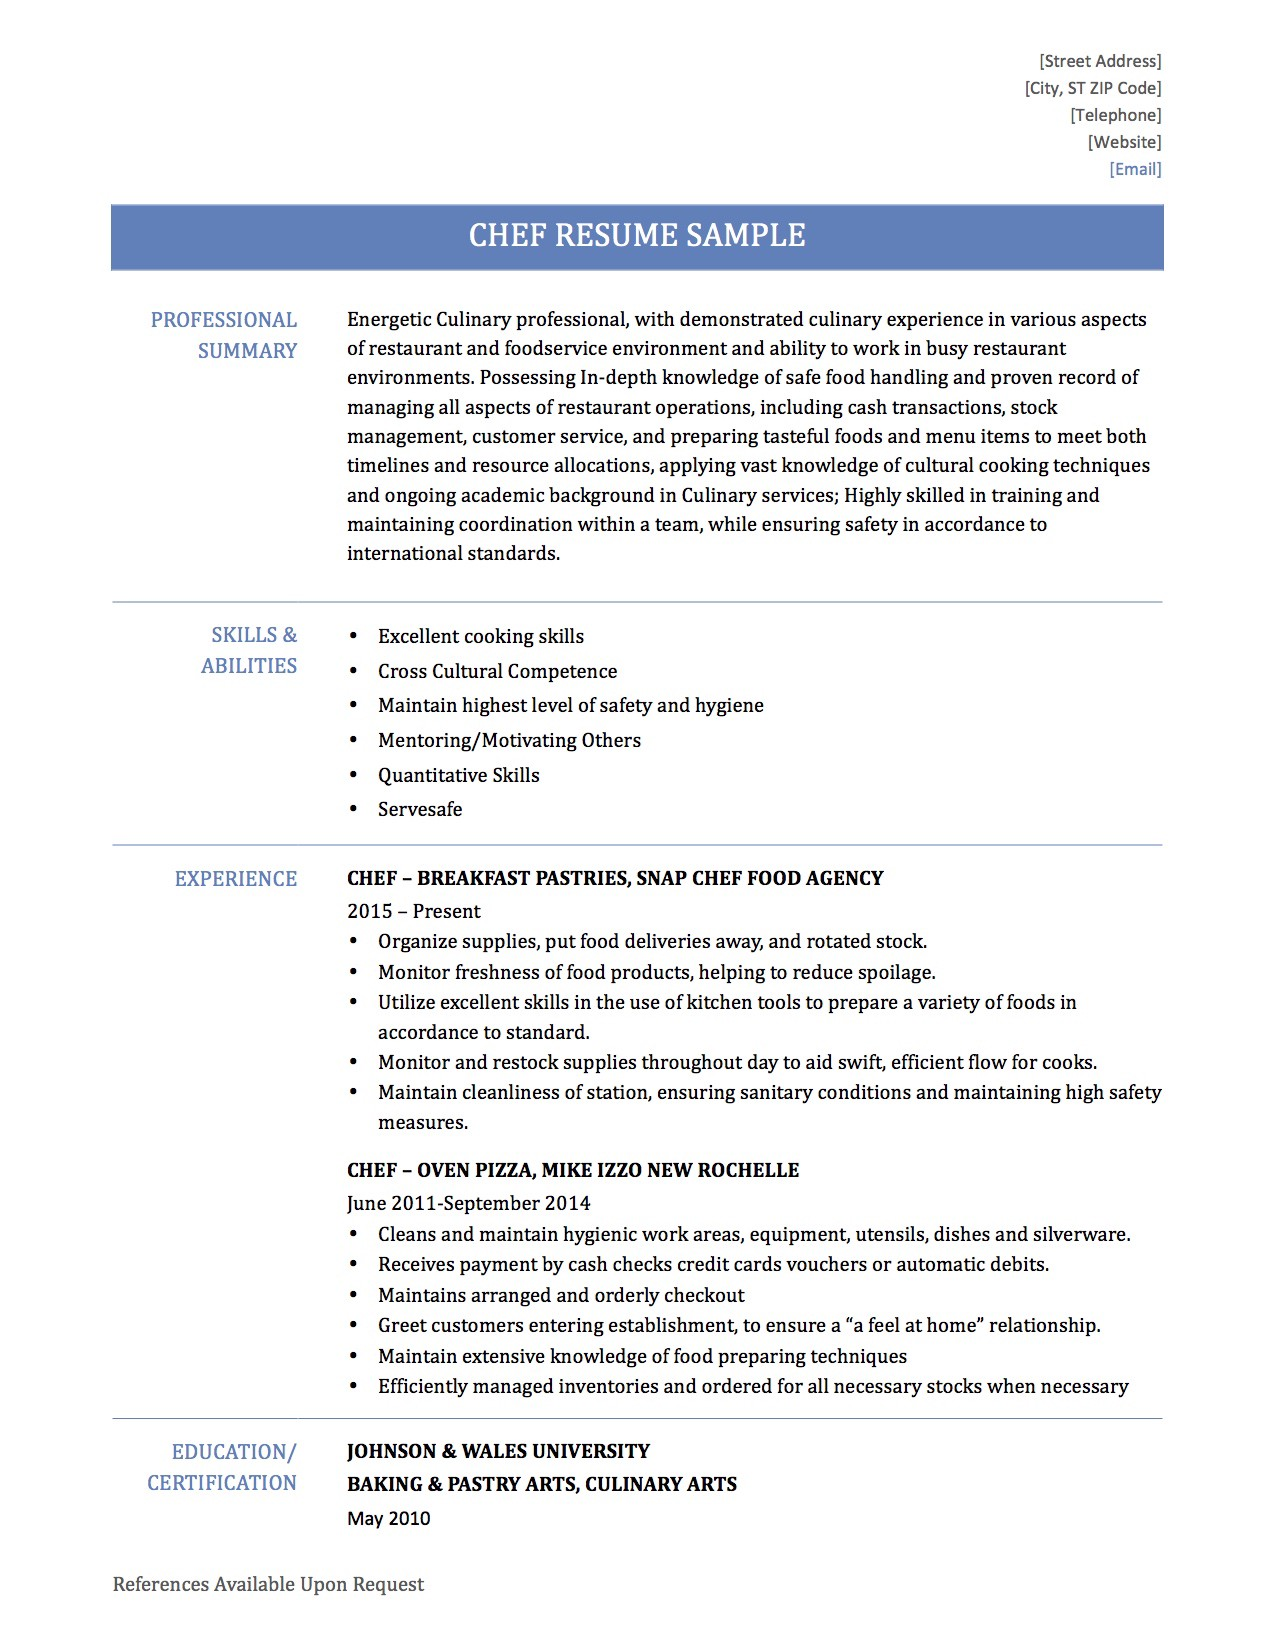 How To Write A Chef Resume Online Resume Builders Medium